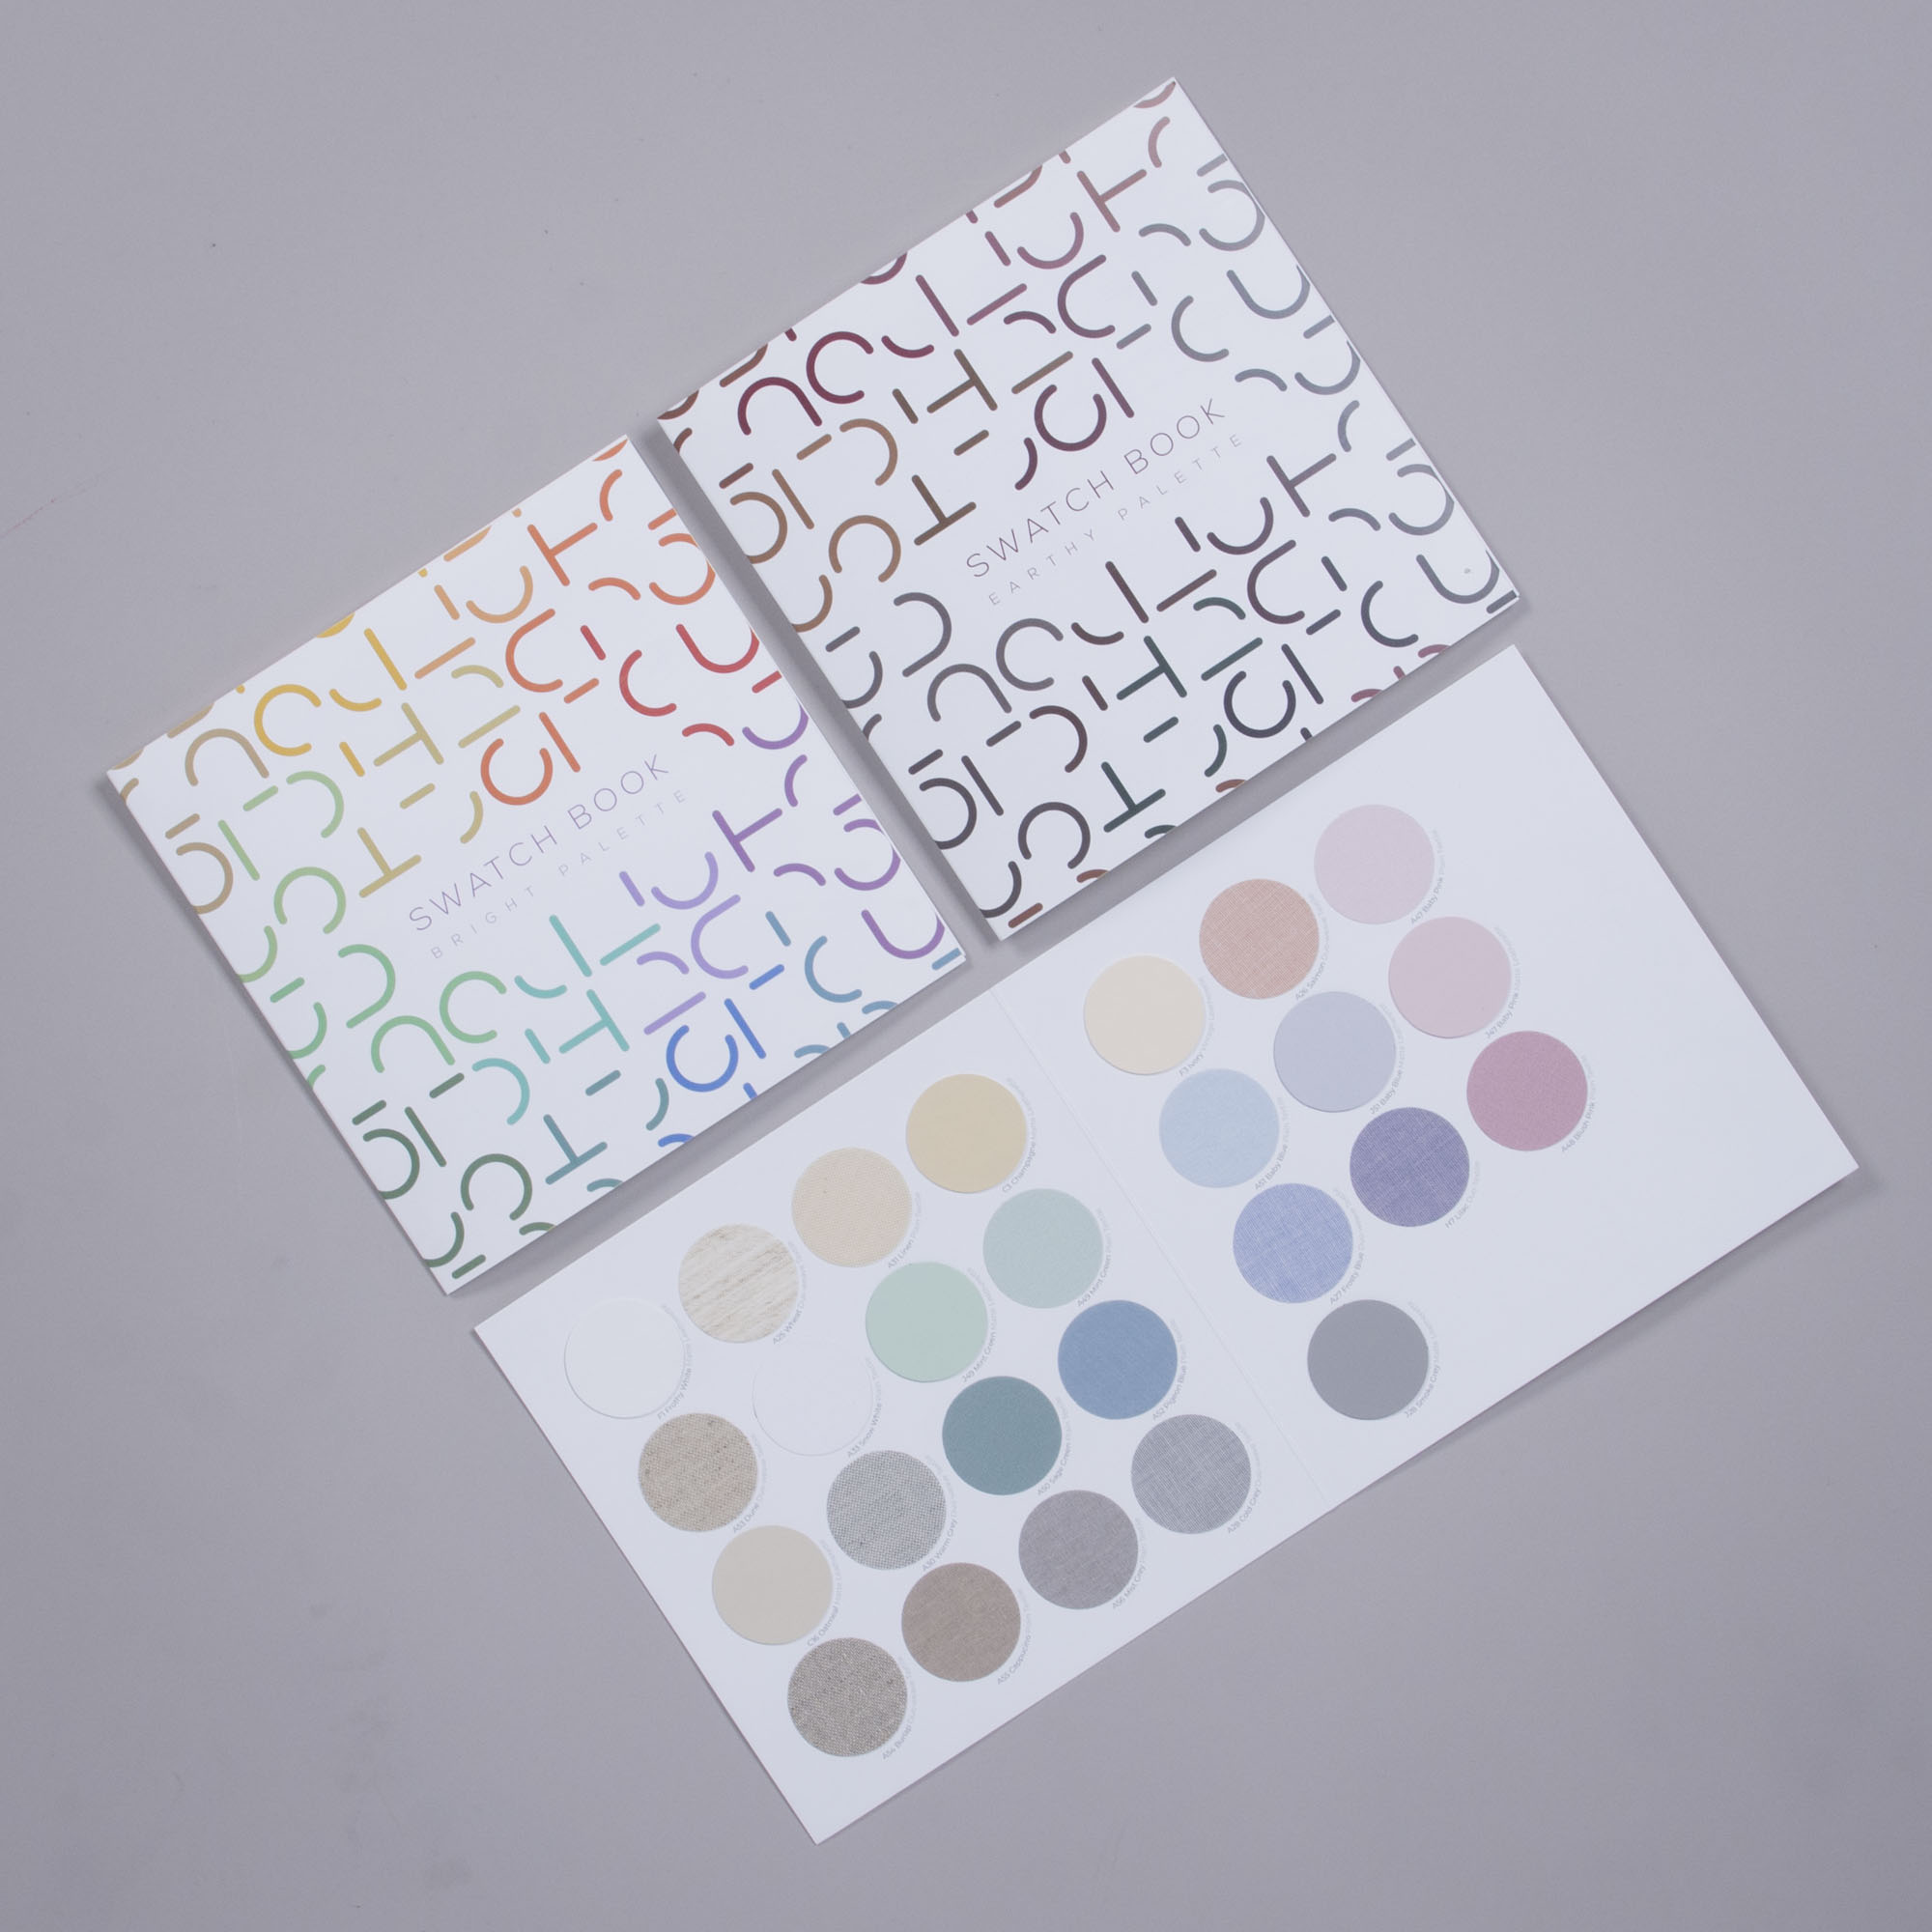 Tangible Swatch Book